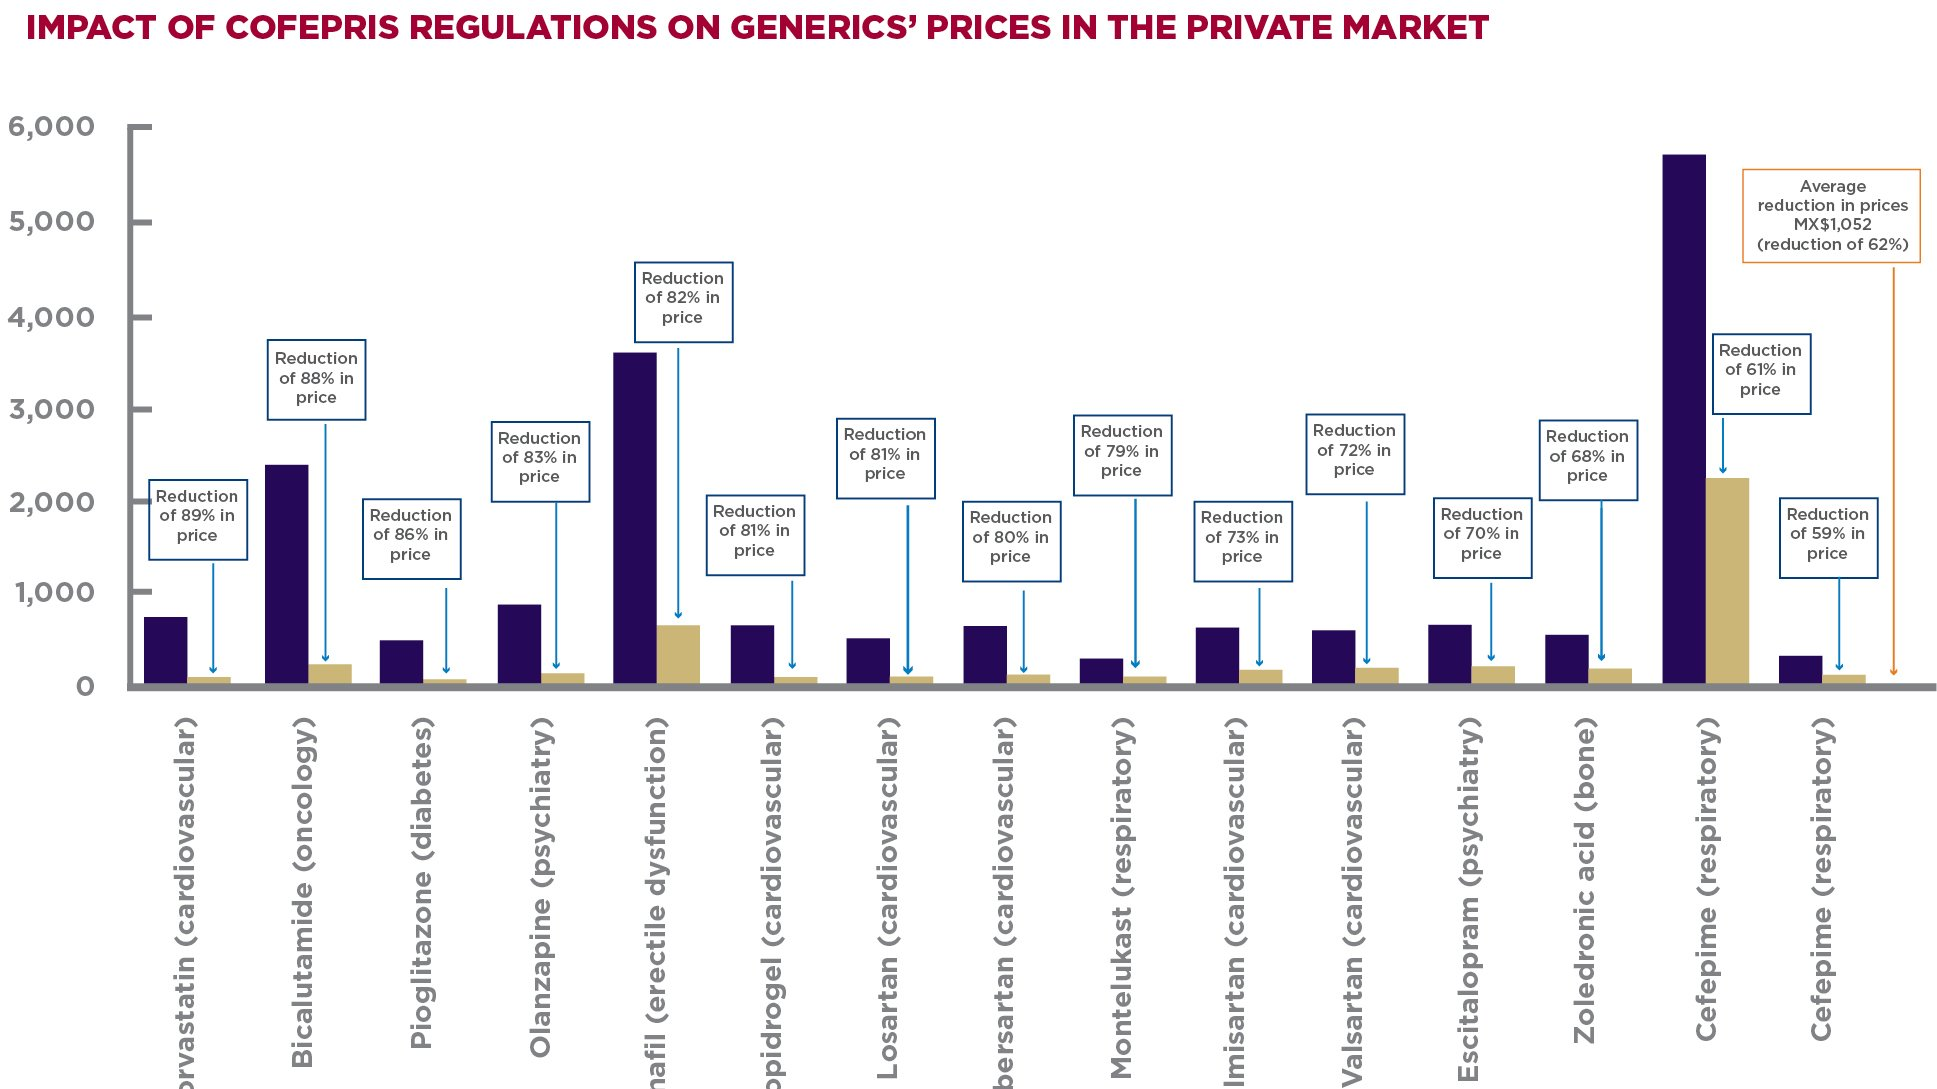 IMPACT OF COFEPRIS REGULATIONS ON GENERICS' PRICES IN THE PRIVATE MARKET